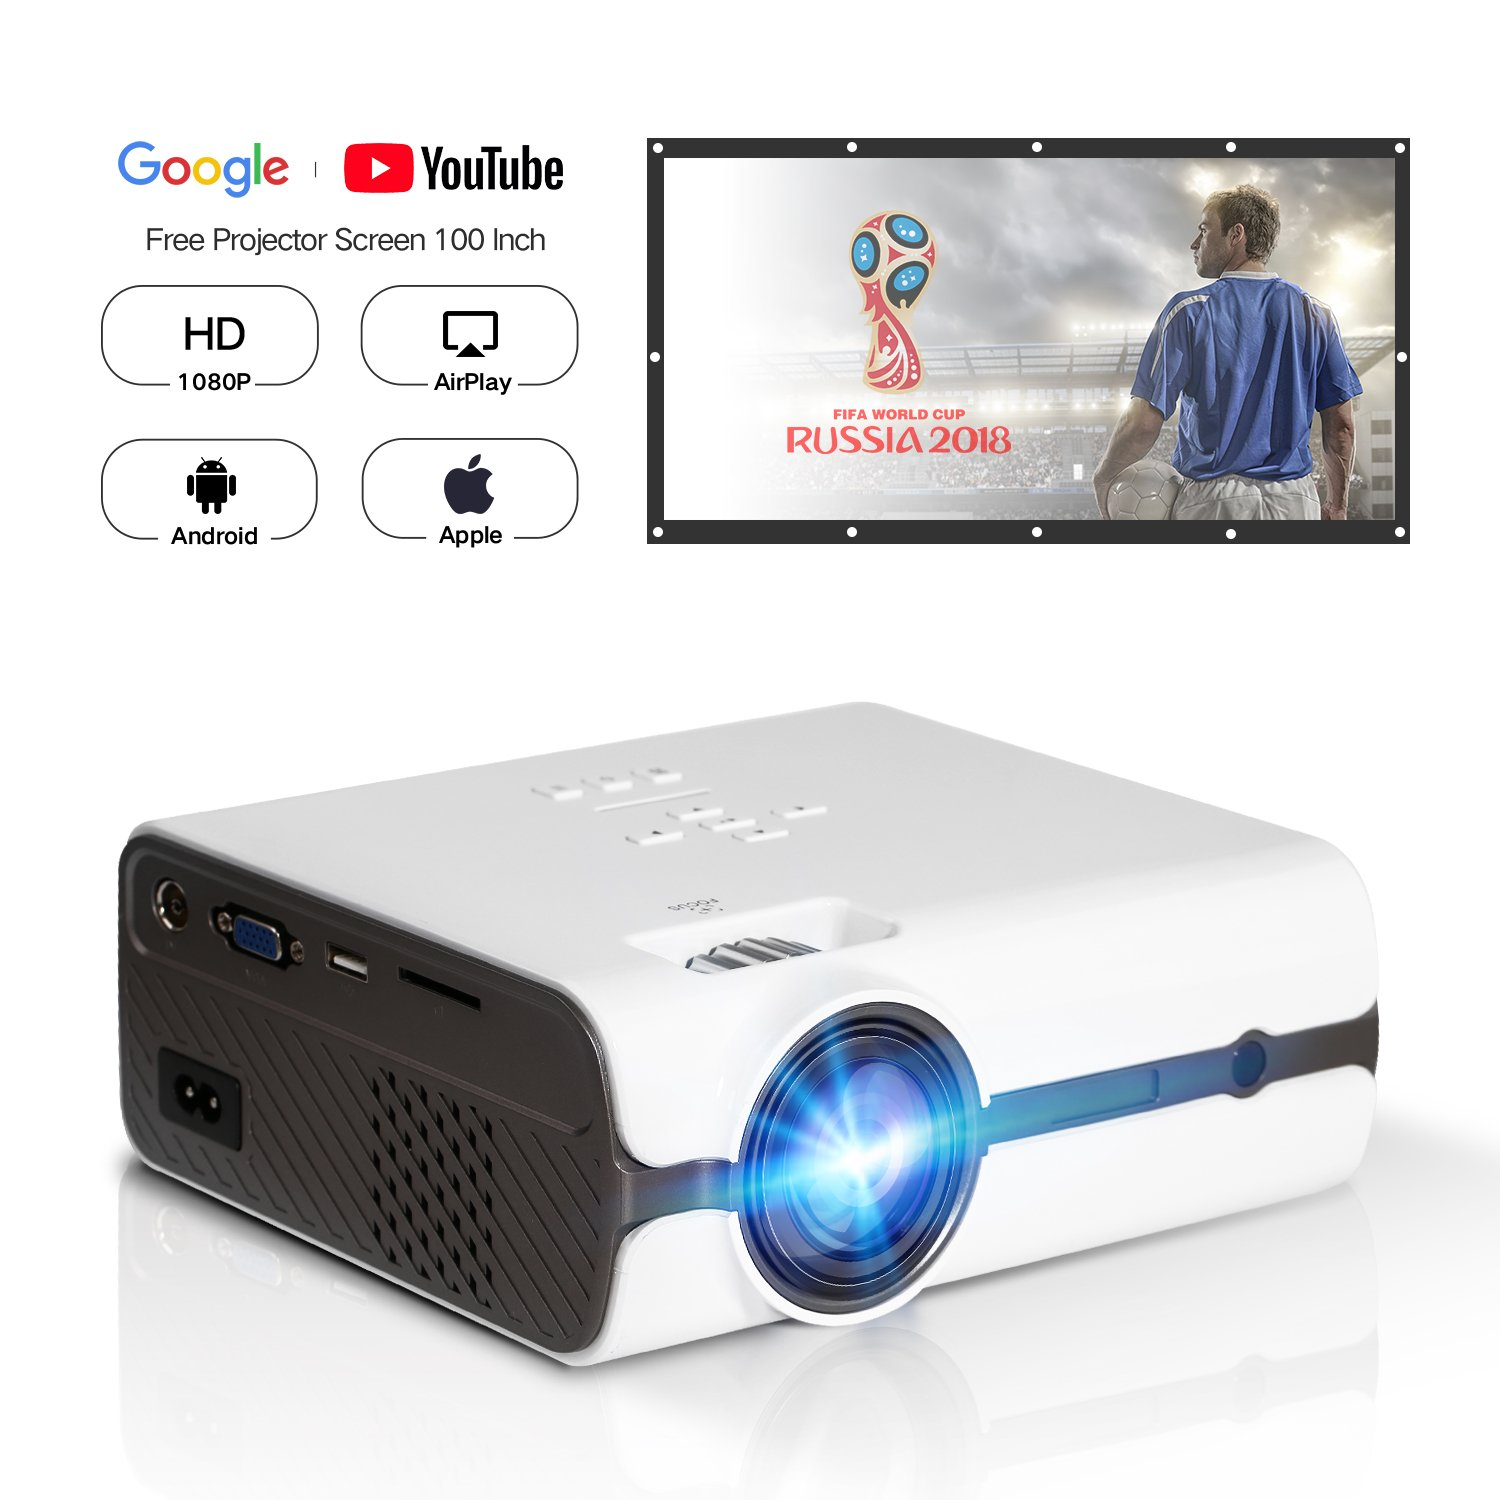 DOACE P3 Video Projector, HD 1080P, 2200 Lumens with Portable Screen 100' for Indoor Outdoor Use, Home Theater Projector Support USB SD Card VGA AV for Home Cinema TV Laptop Game Smartphone (White) VPJ